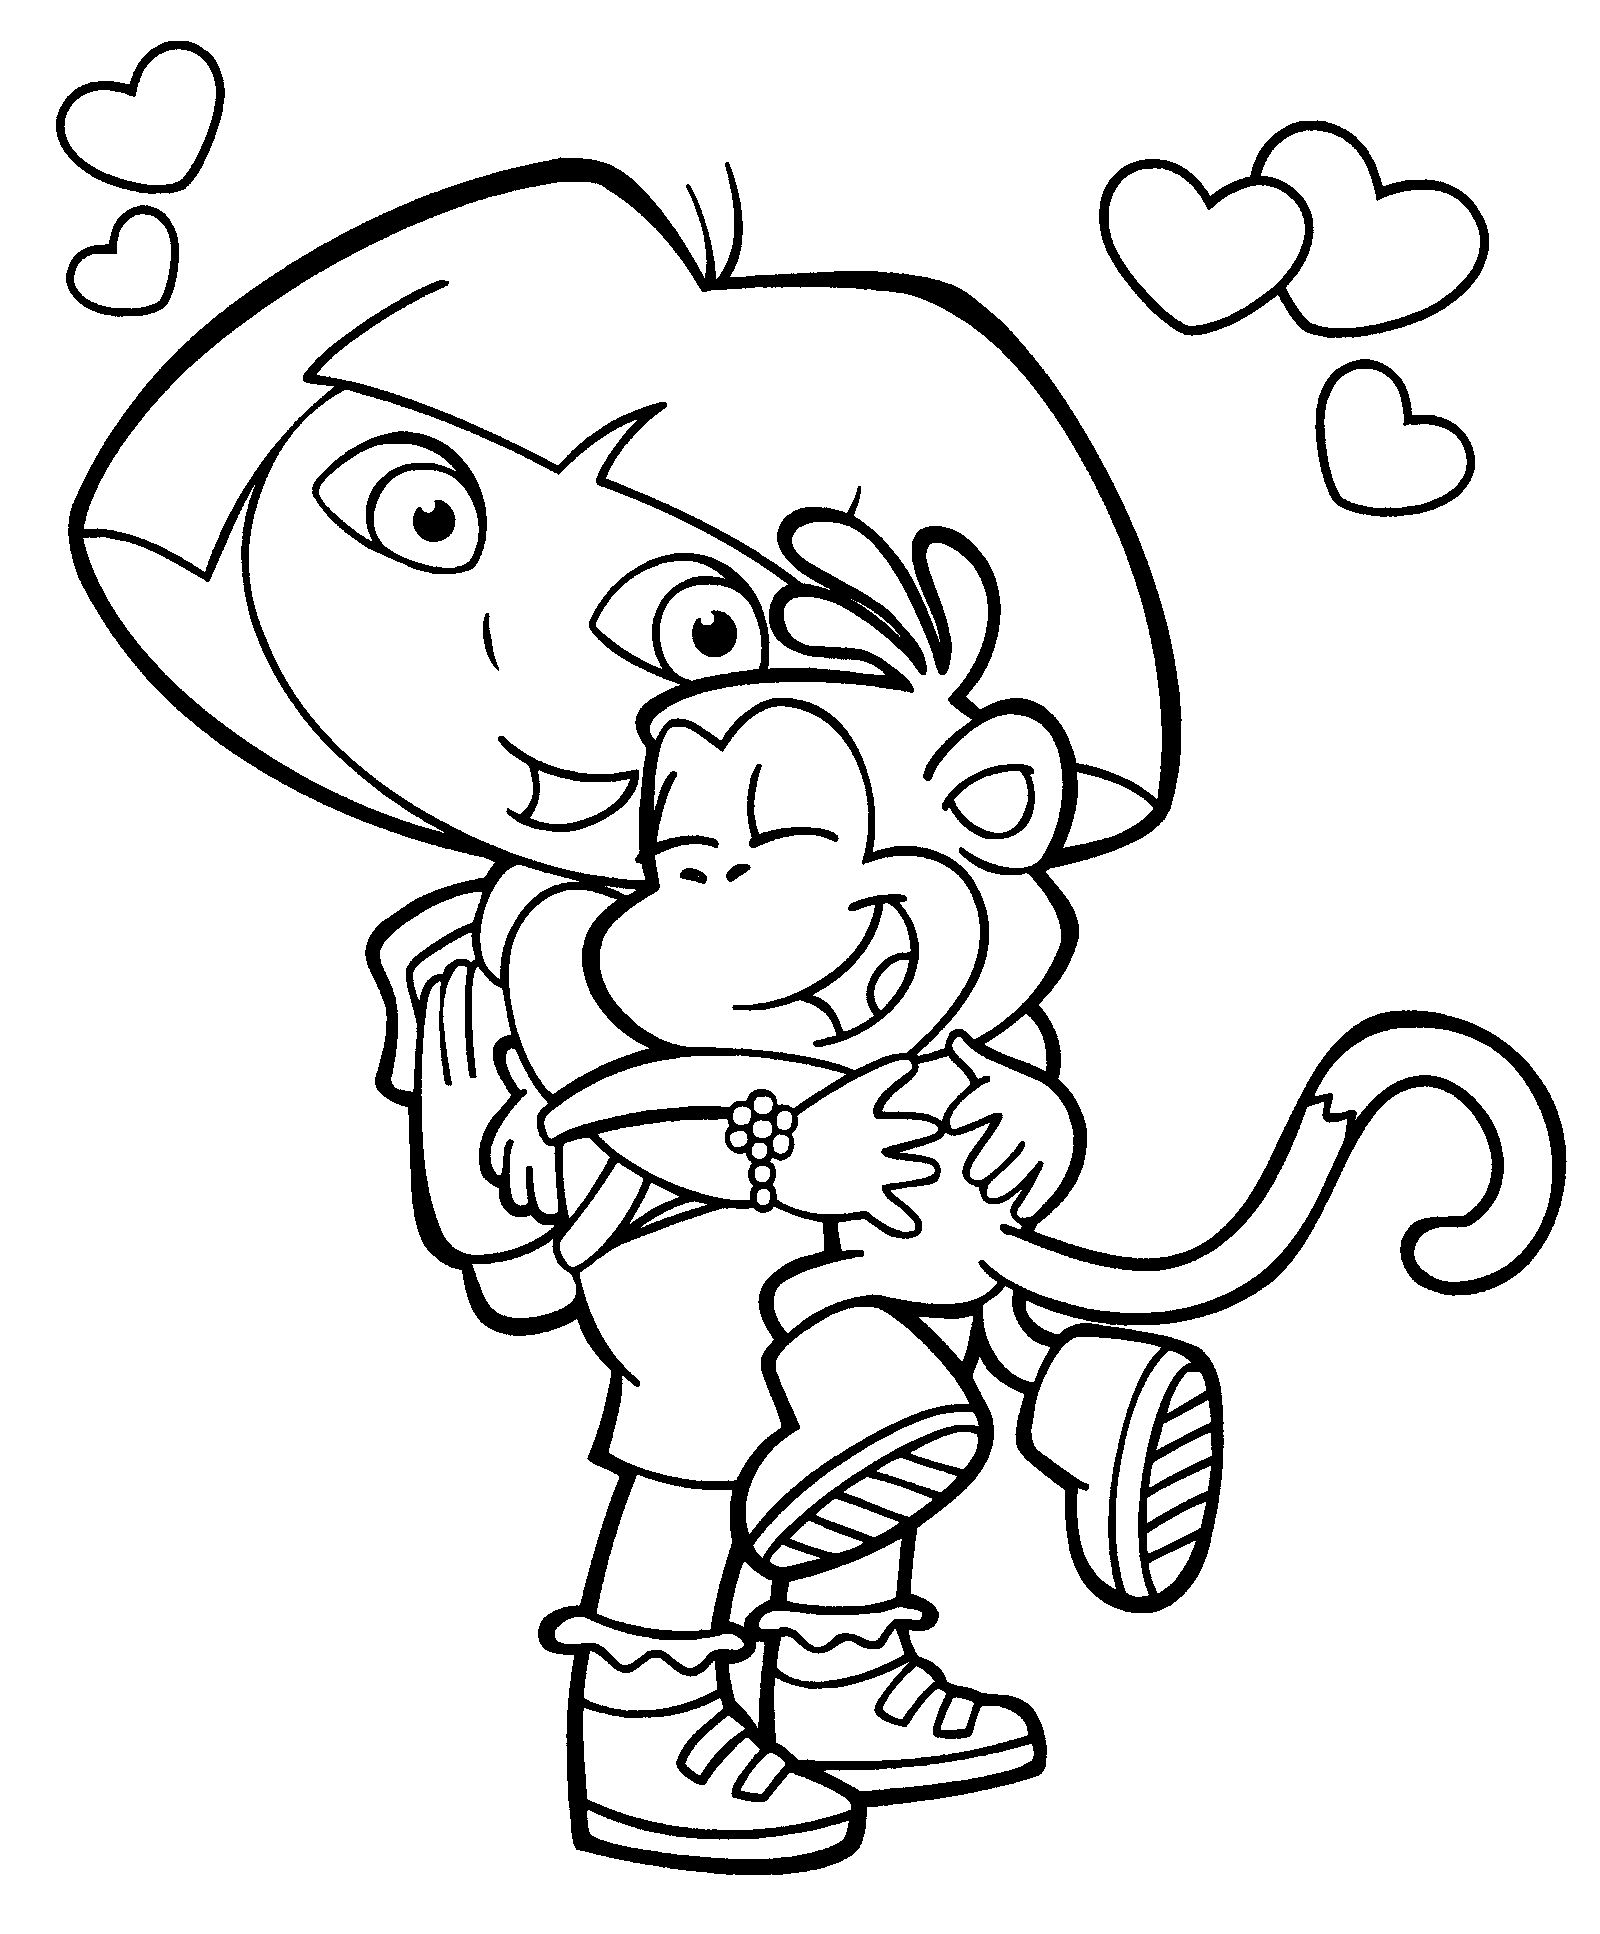 Coloring Pages Nick Jr Coloring Pages Online 1000 images about coloring pages kids on pinterest and colouring pages